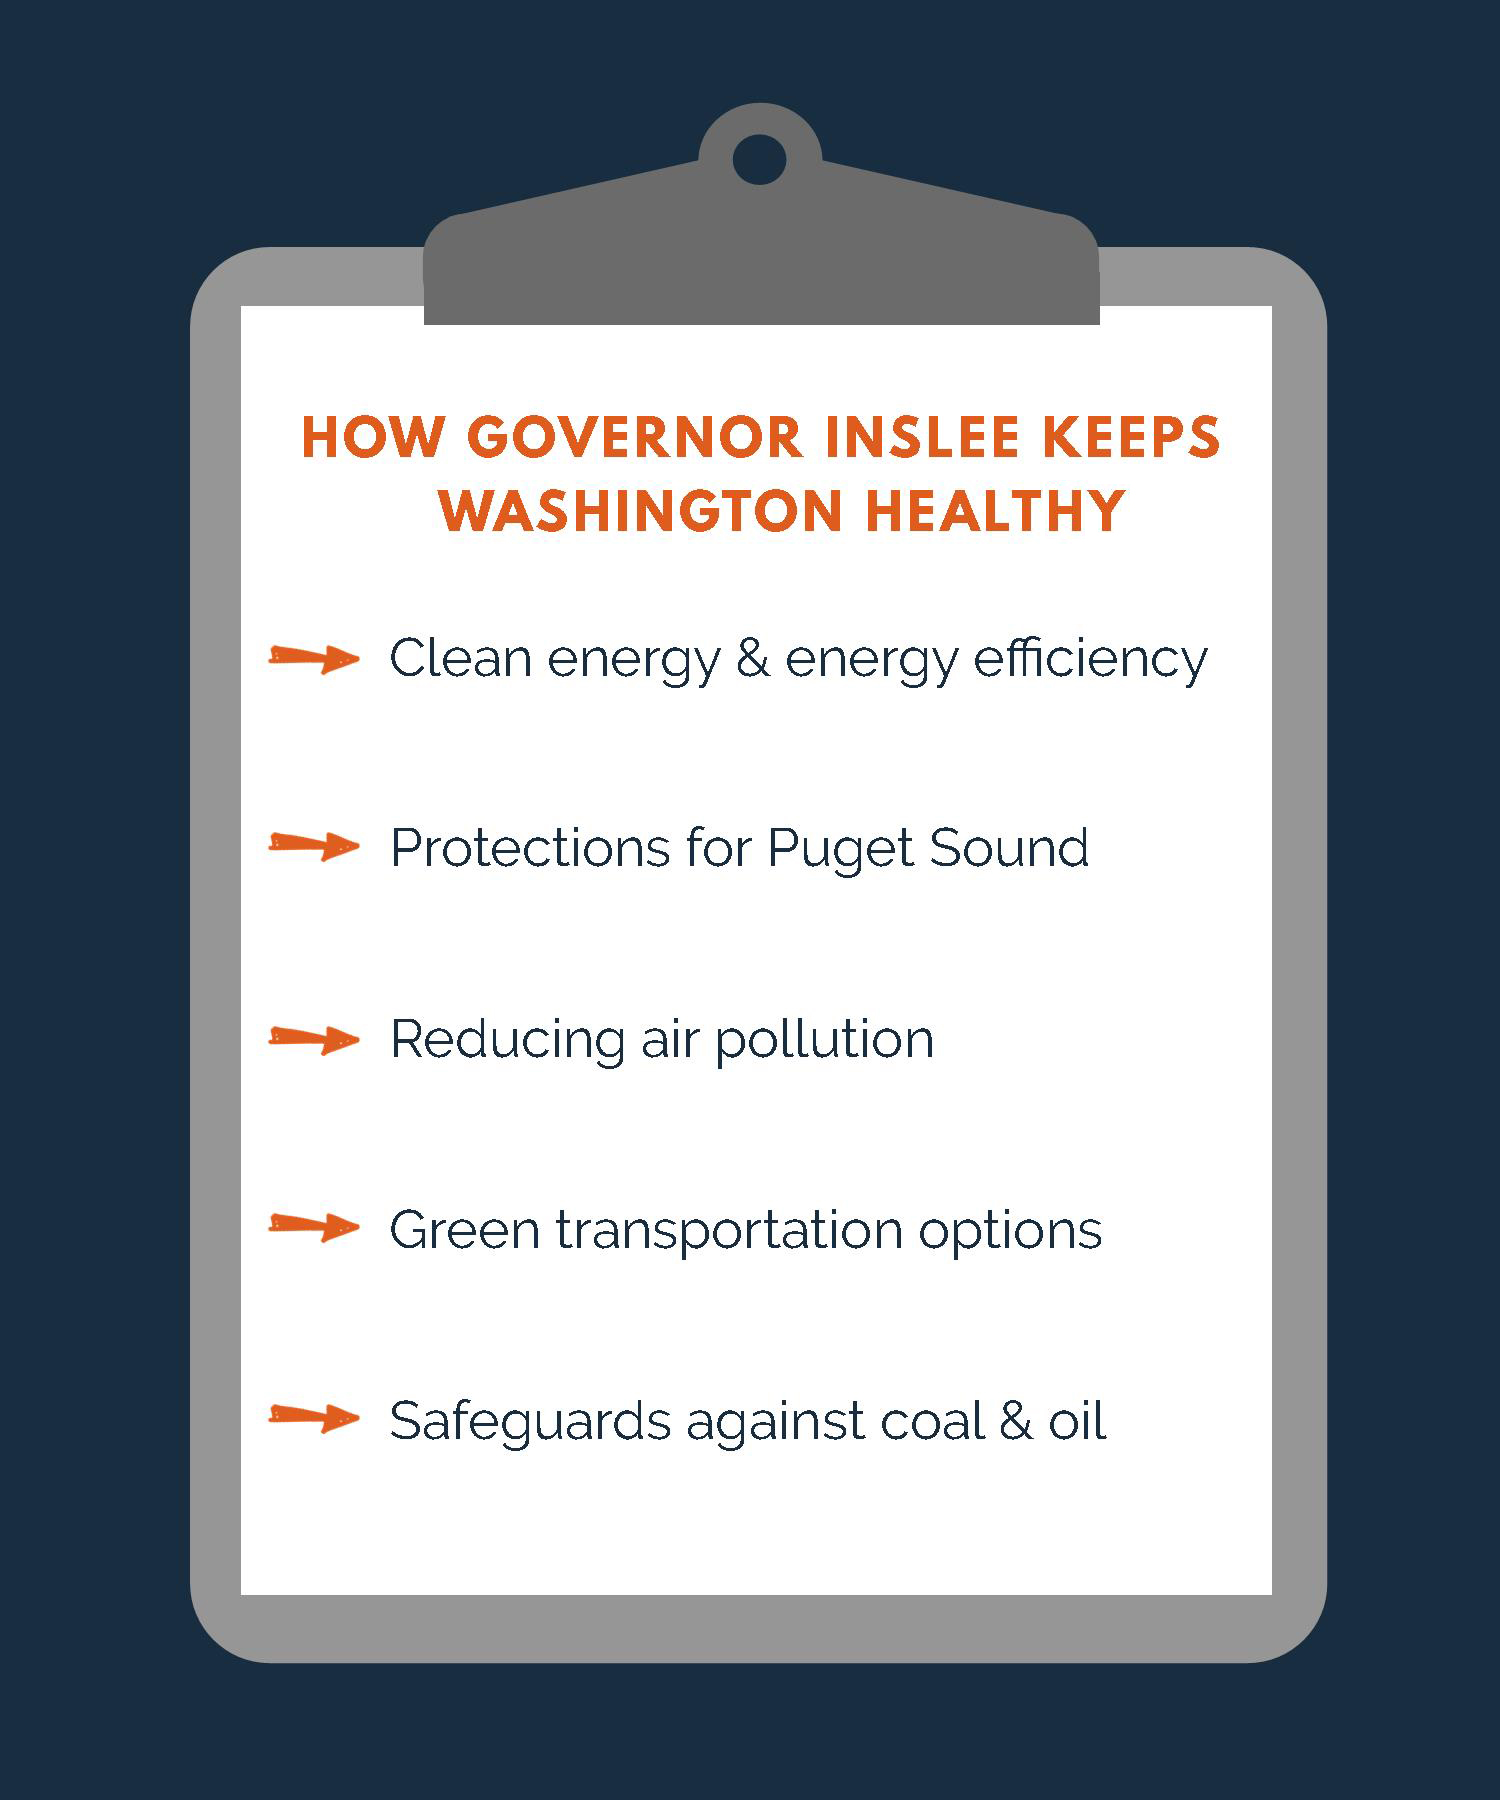 inslee_graphic2